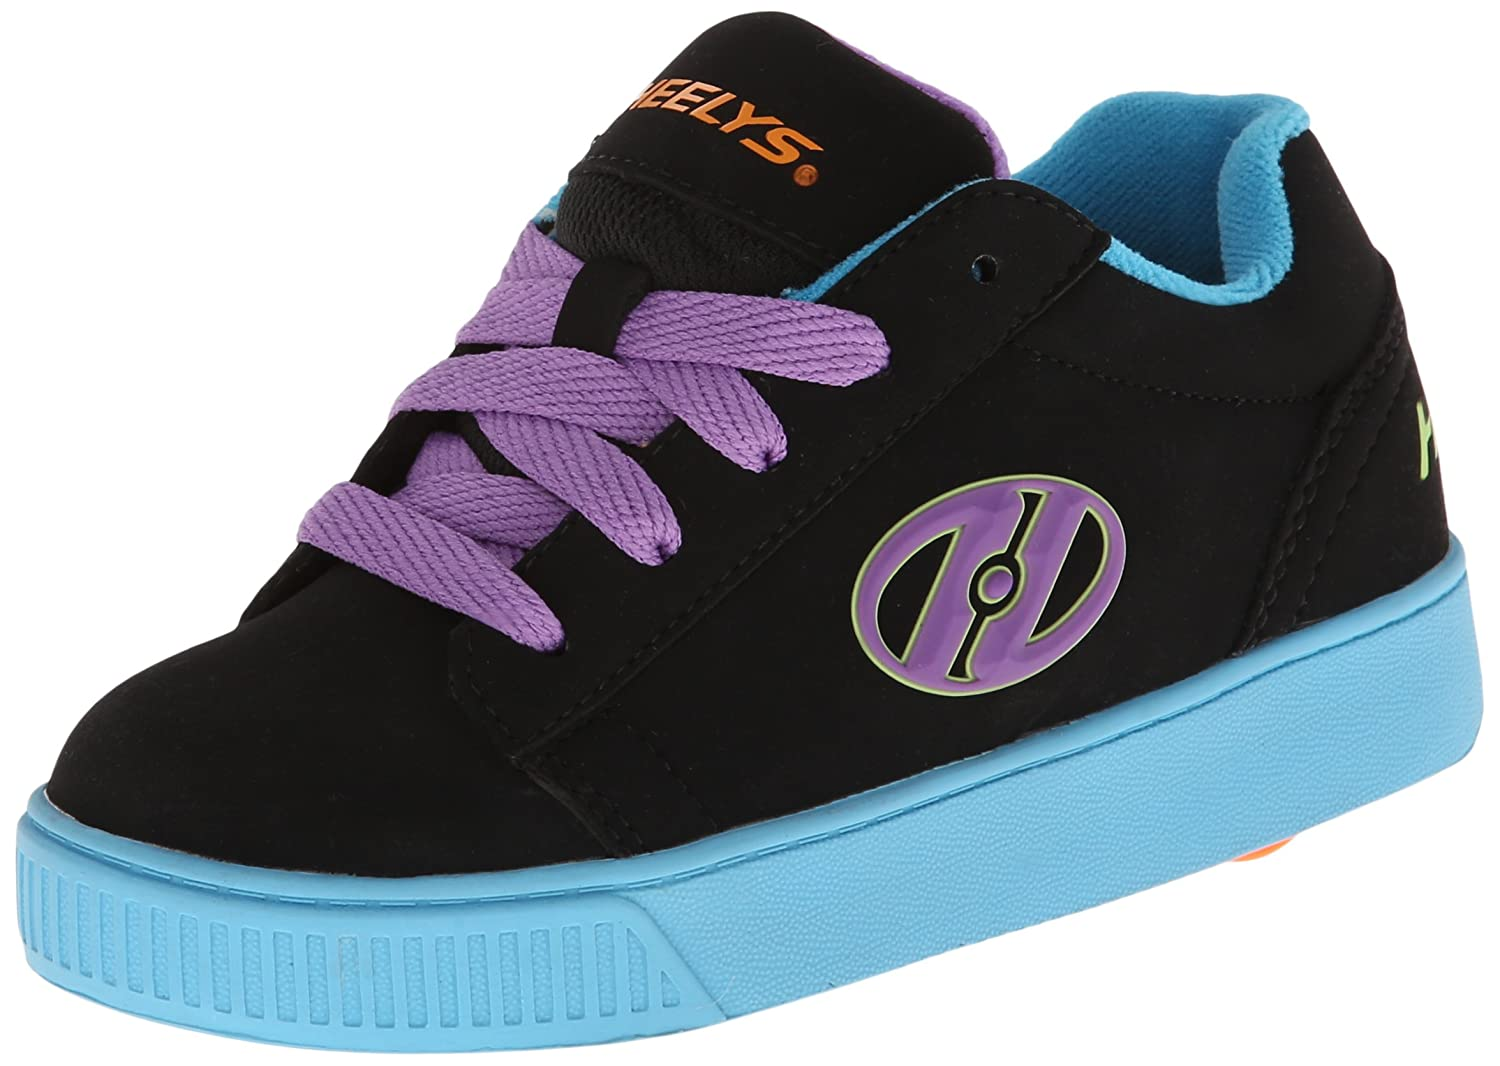 Heelys Straight Up Skate Shoe (Little Kid/Big Kid) B00DDY2SQE 1 M US Little Kid|Black/Blue